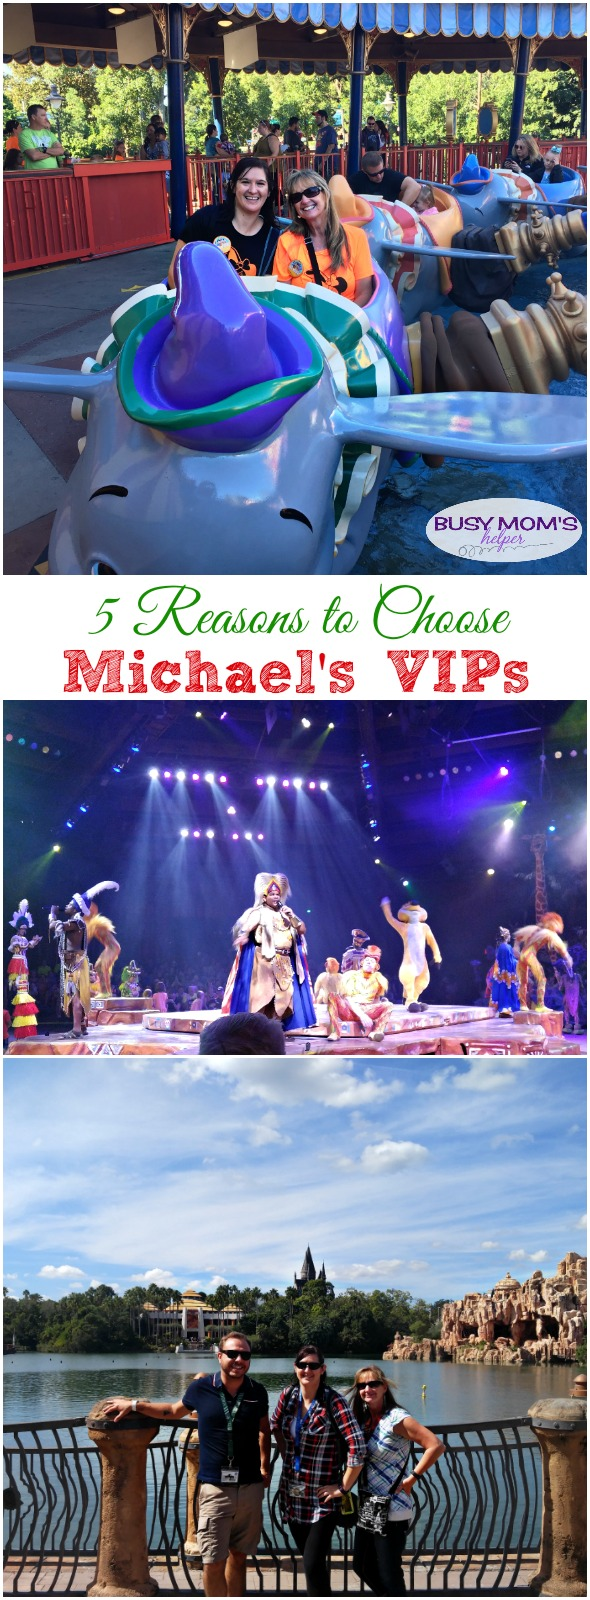 10 Reasons to Choose Michael's VIPs #hosted